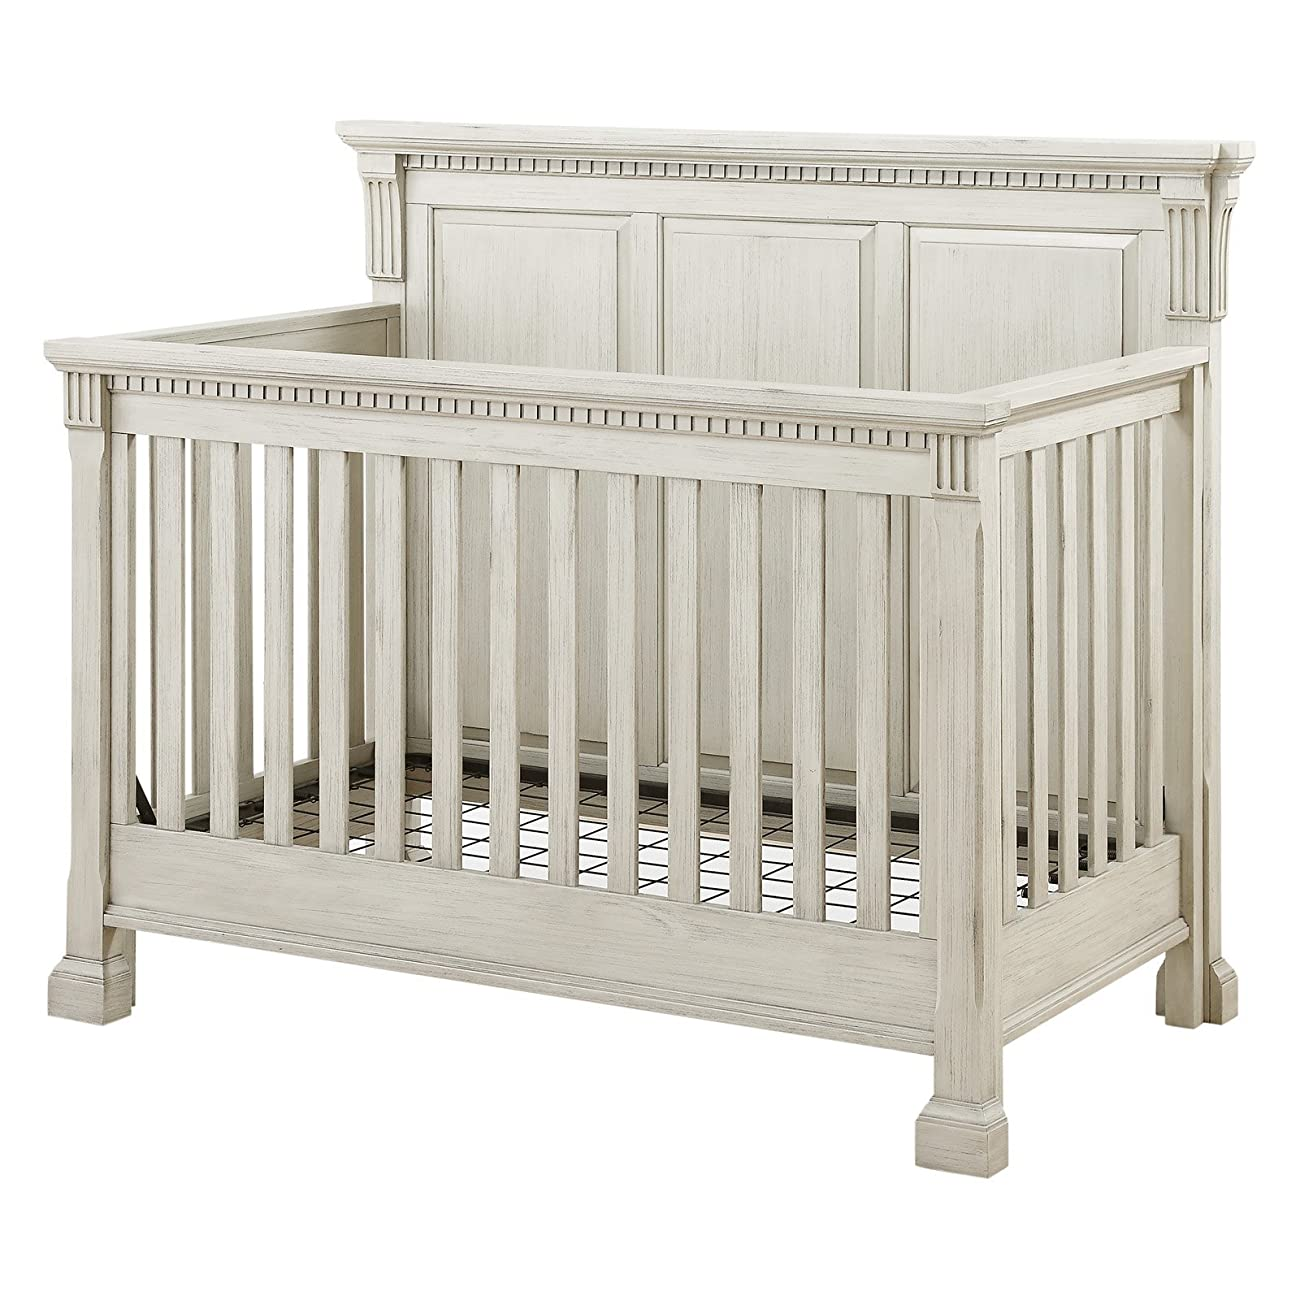 Monbebe Everett 4-in-1 Convertible Crib - Antique 5